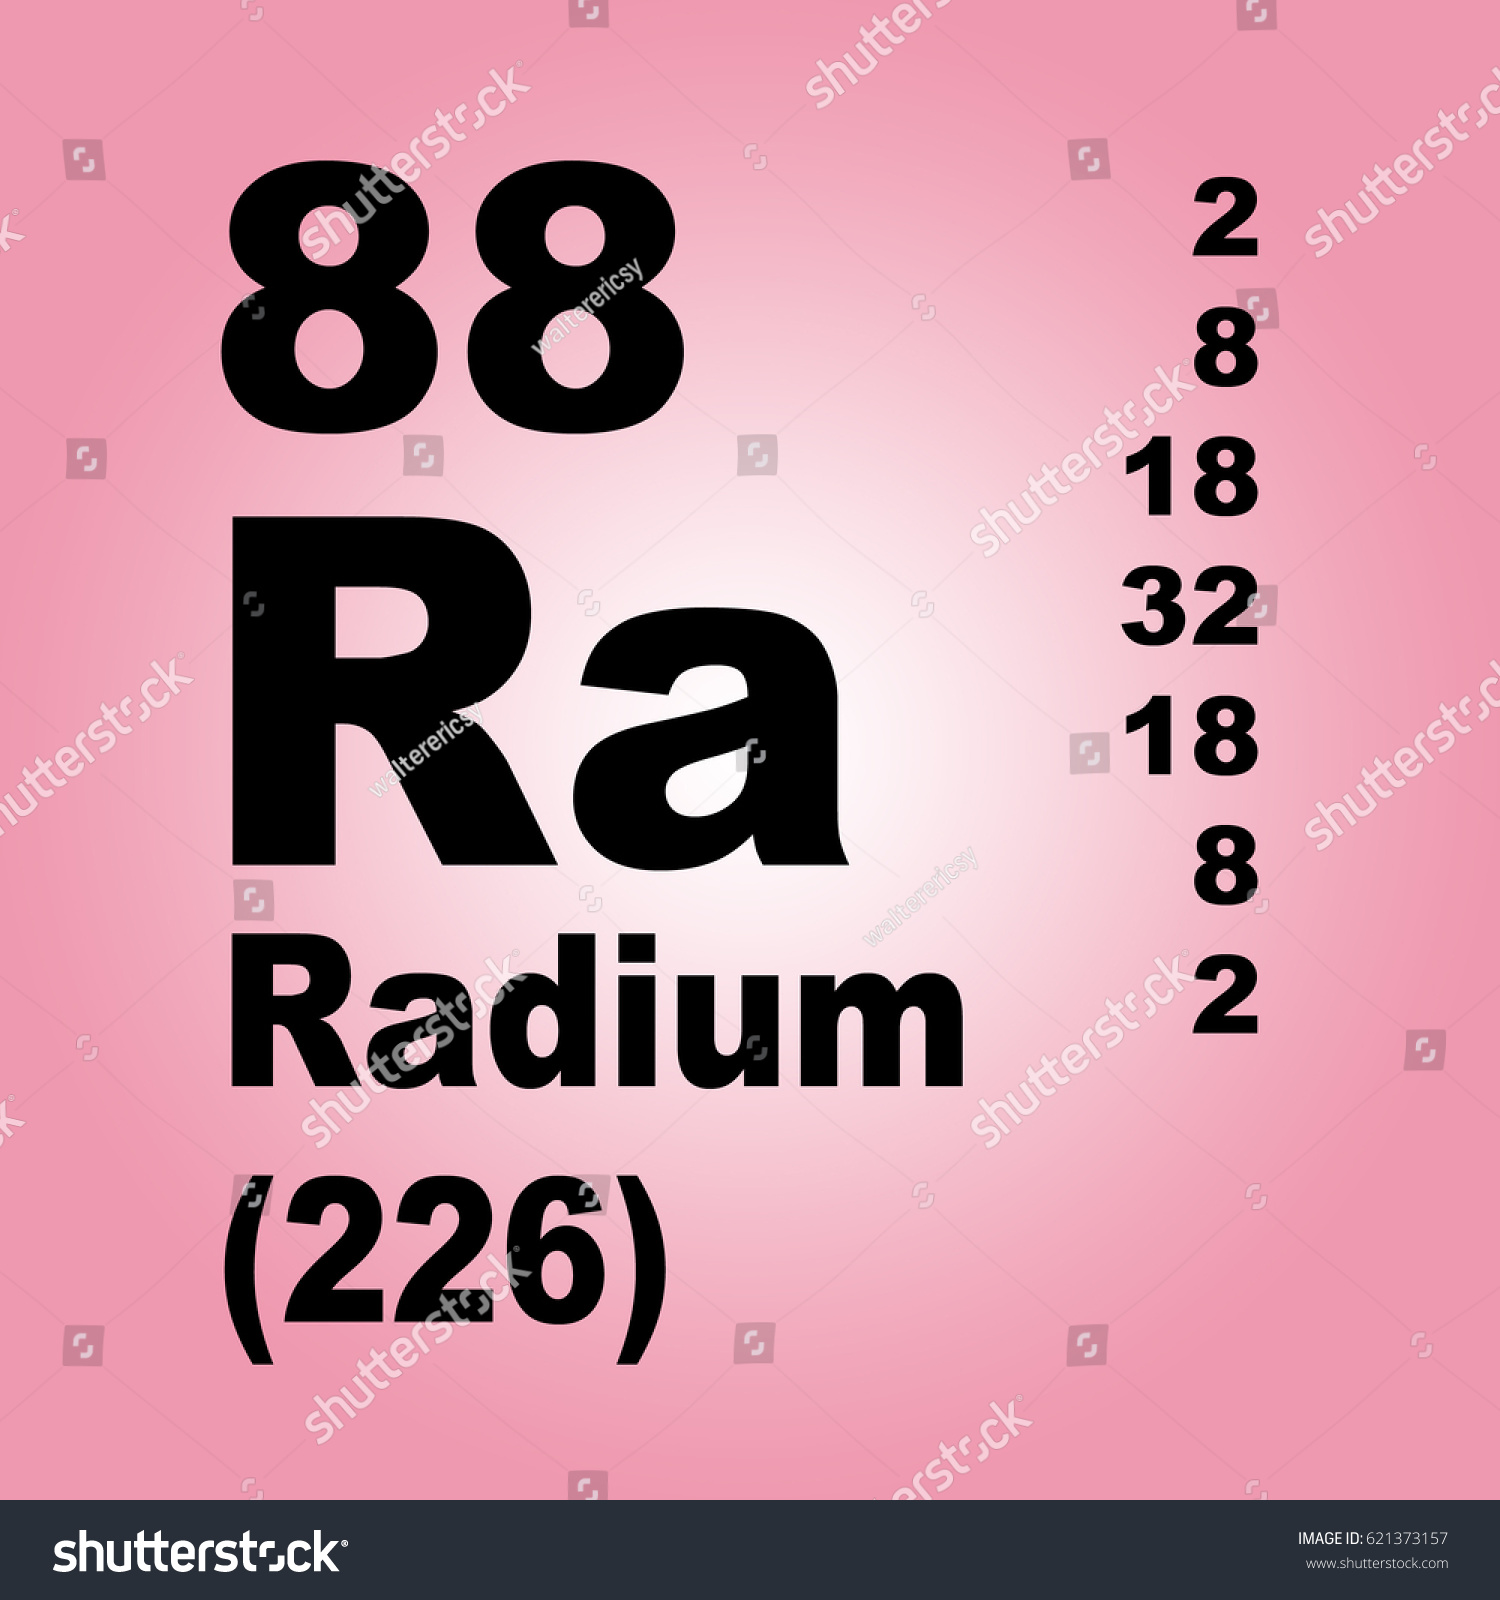 Radium periodic table elements stock illustration 621373157 radium periodic table of elements gamestrikefo Images